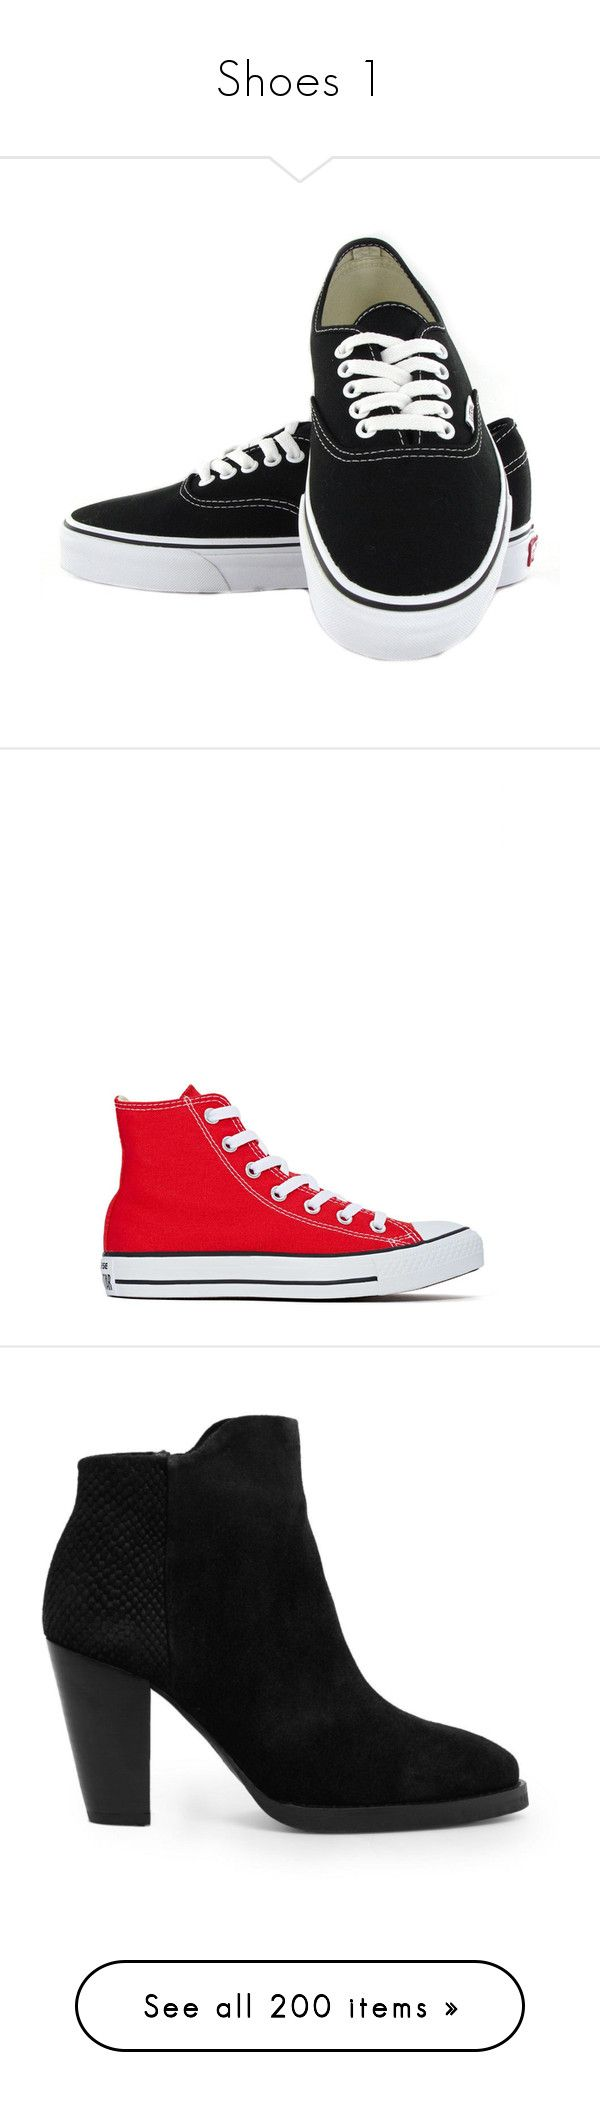 Shoes 1 by desdall on Polyvore featuring polyvore, fashion, shoes, sneakers, vans, sapatos, vans sneakers, kohl shoes, black shoes, vans footwear, black sneakers, converse, red, lace up shoes, high top trainers, low heel shoes, high top shoes, red hi tops, boots, ankle booties, heels, black, botas, black boots, block heel booties, heeled booties, suede ankle boots, suede booties, pumps, black high heel pumps, high heel pumps, black ankle strap pumps, black high heel shoes, black stilettos…